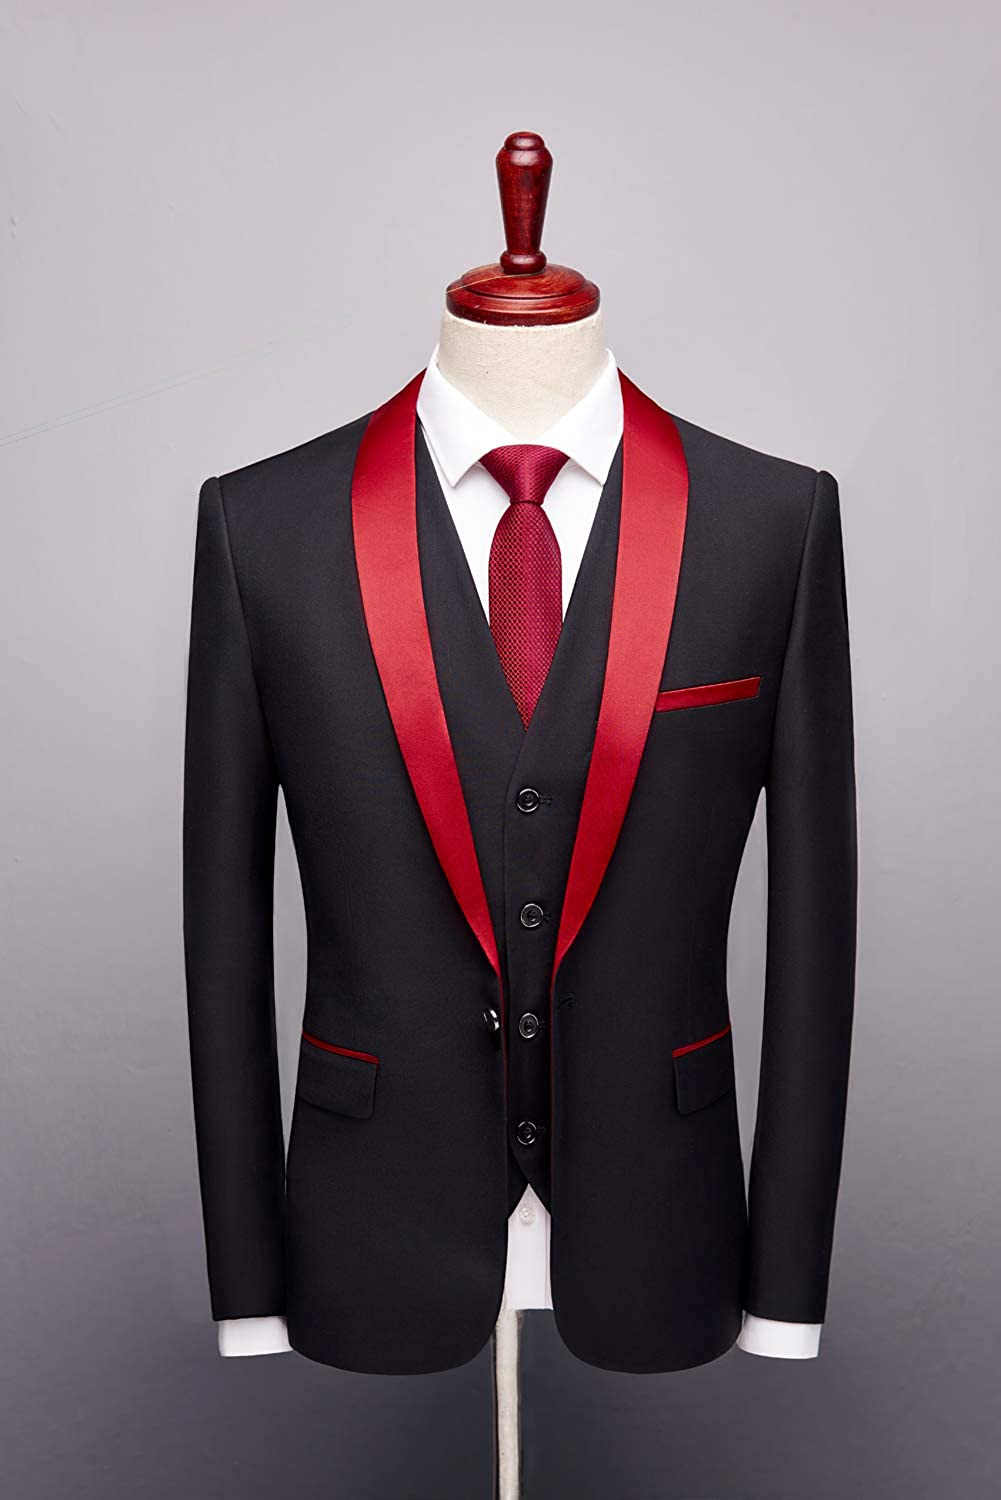 Mens Red Shawl Lapel Black 3 Pieces Suits One Button Wedding Suit Groom Tuxedo At Amazon Men S Clothing Store